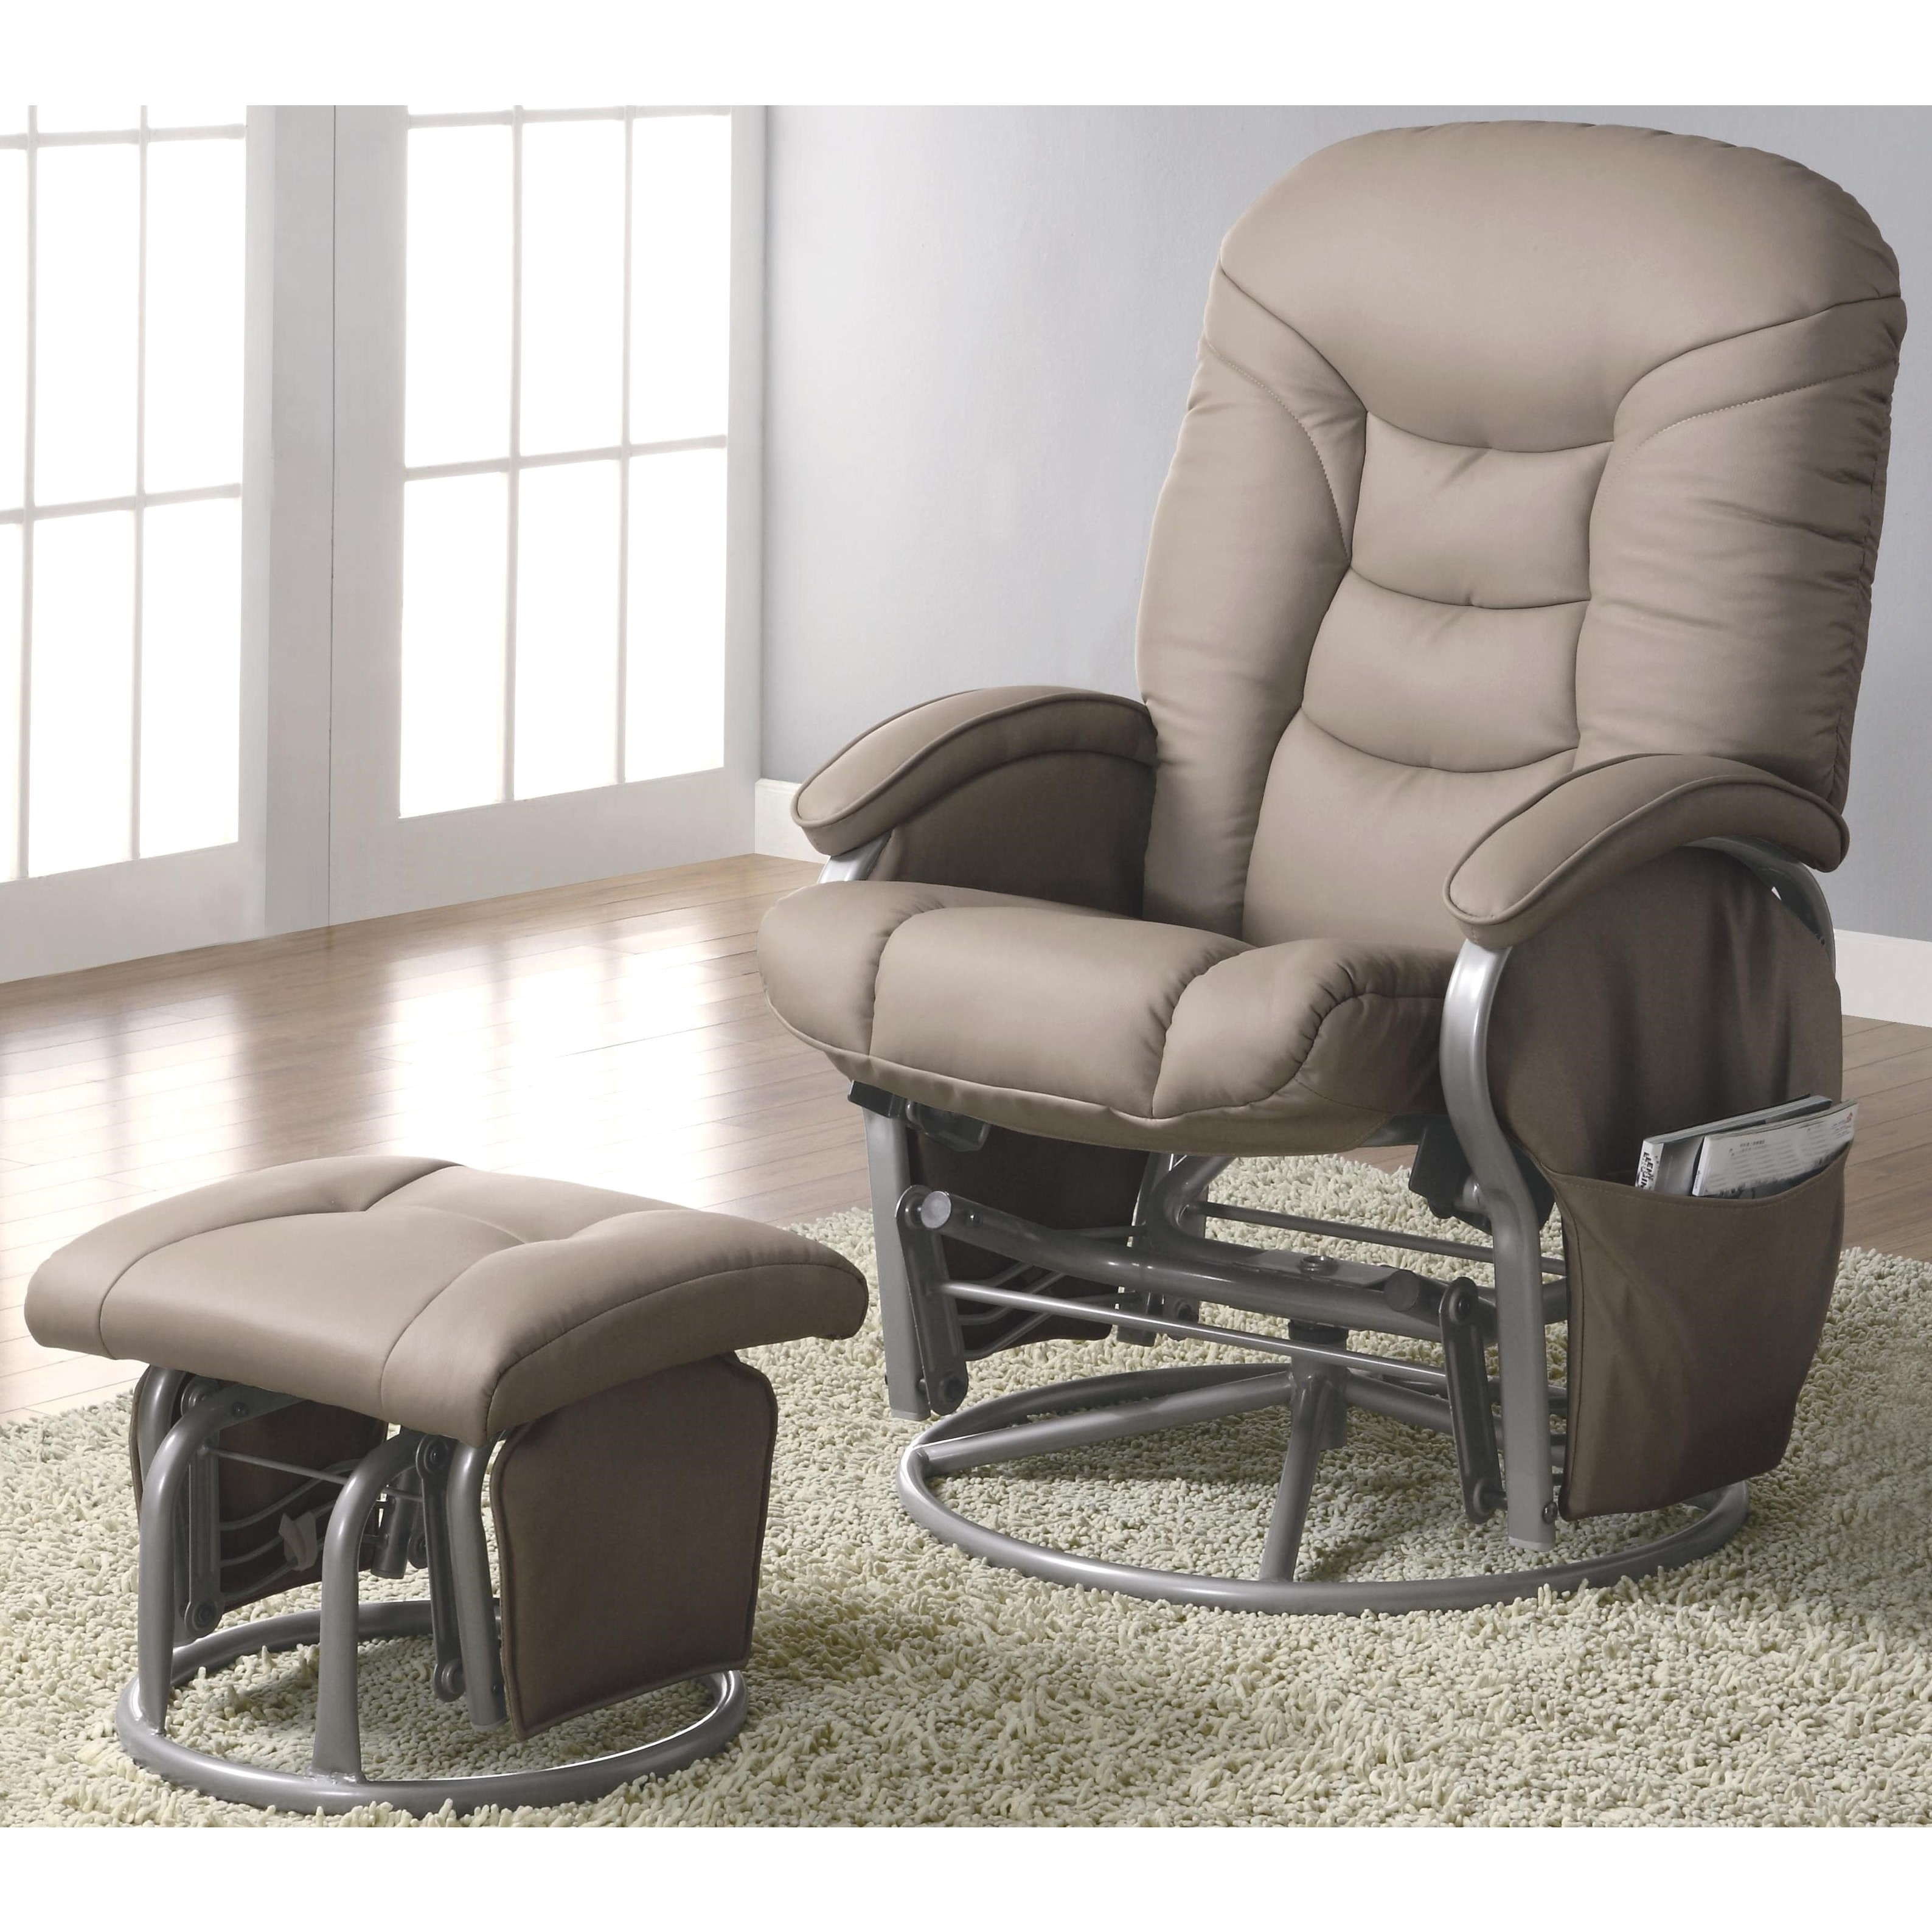 with ikea recliner nursery outdoor glider best walmart set chairs chair of and ottoman leather office size cushions rocking full canopy